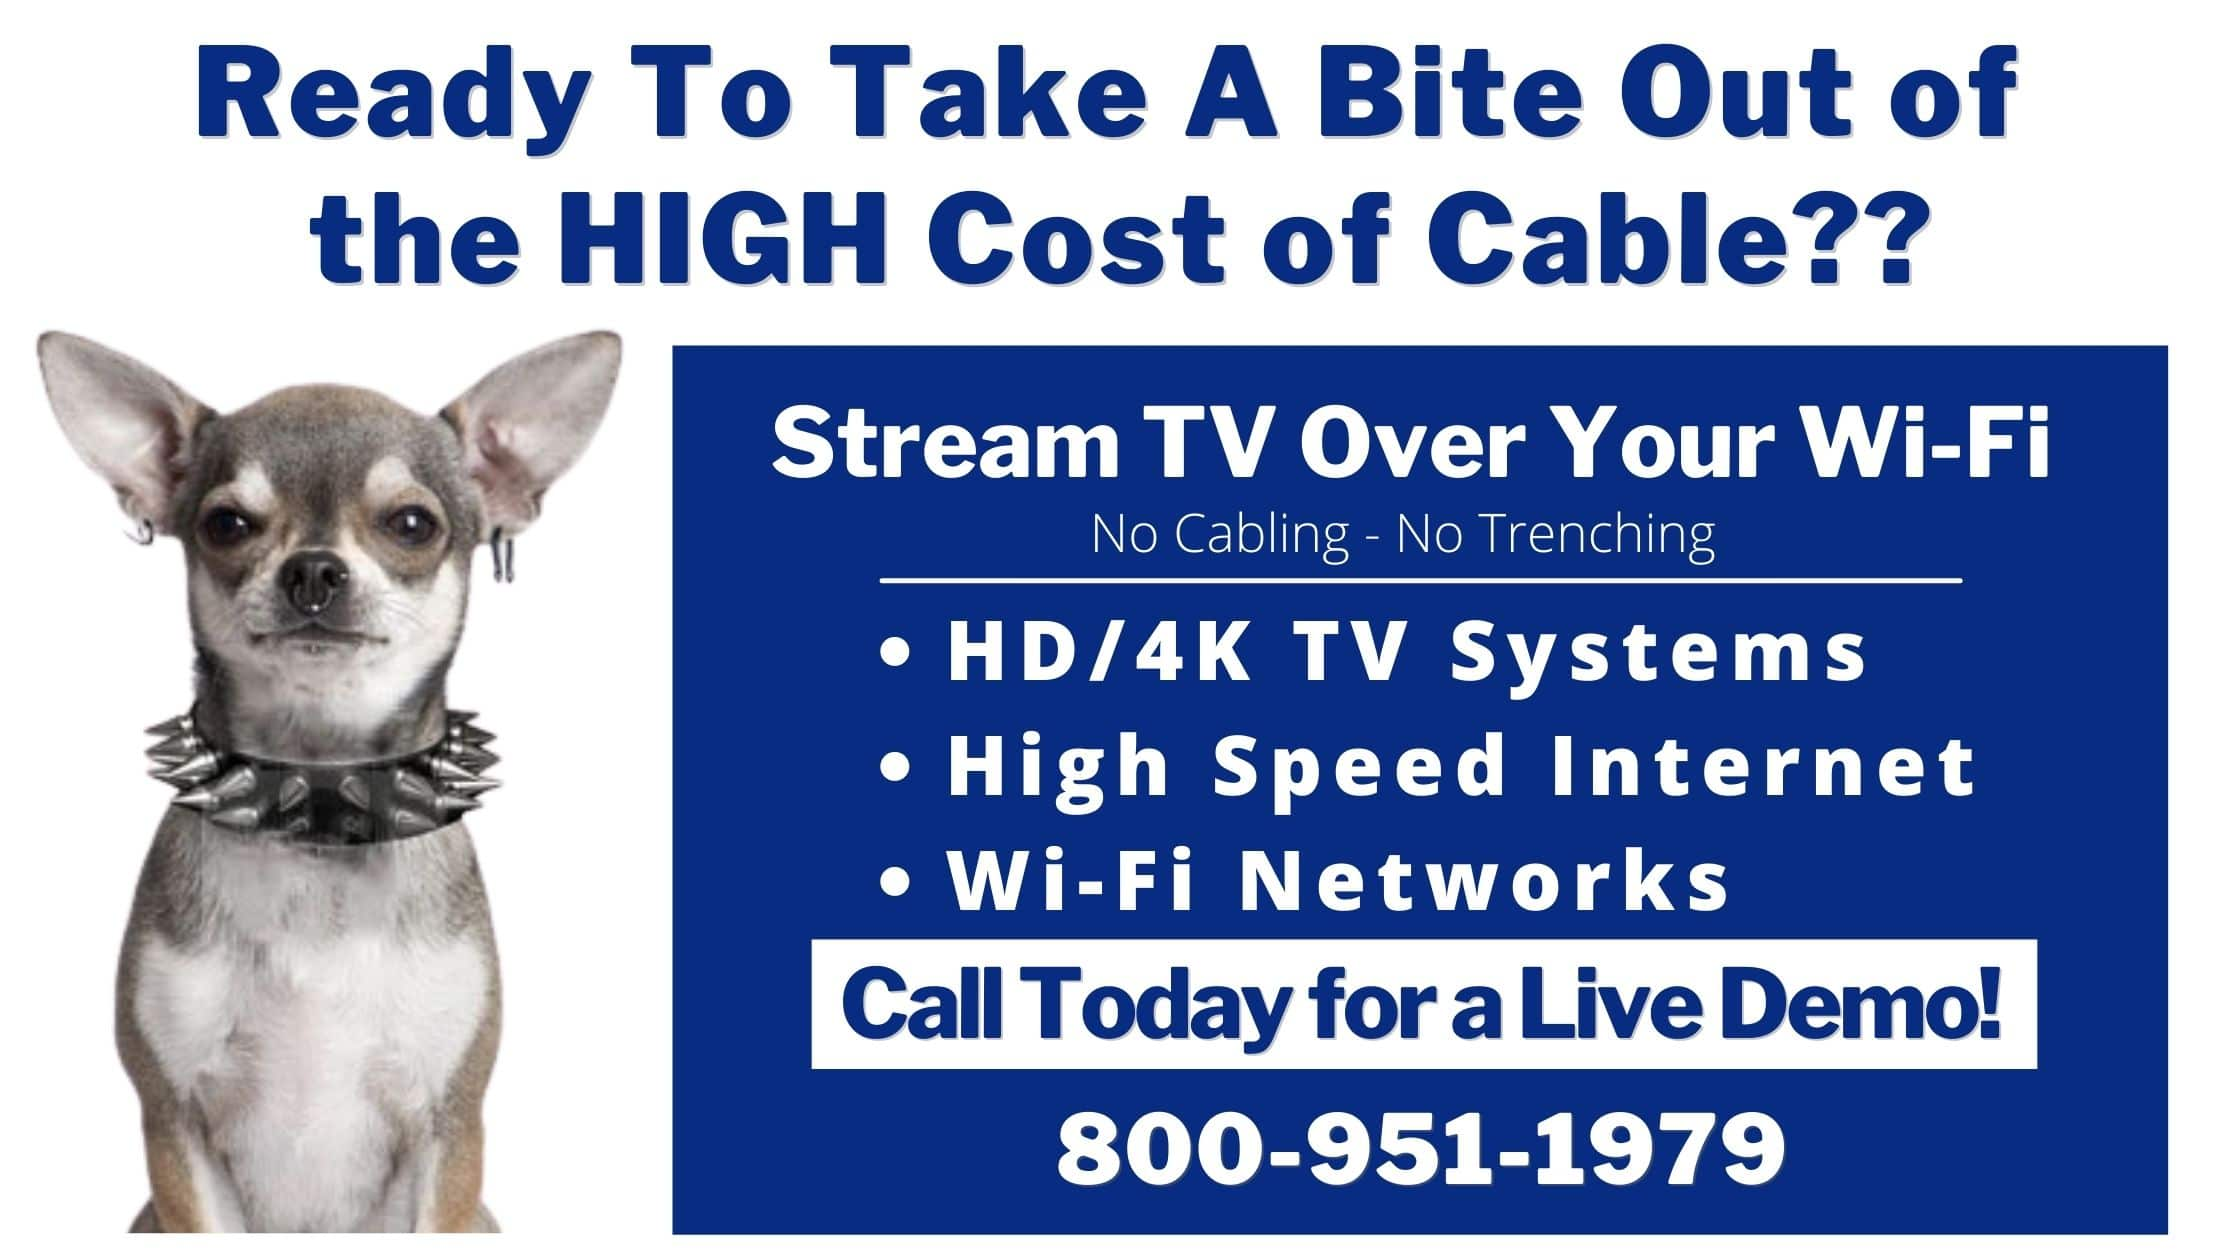 Ready to take a bit out the hugh cost of cable - Stream TV over Your Wi-Fi - HD TV Systems, High Speed Internet, Wifi Networks, Call 800-951-1979 for a Live Demo